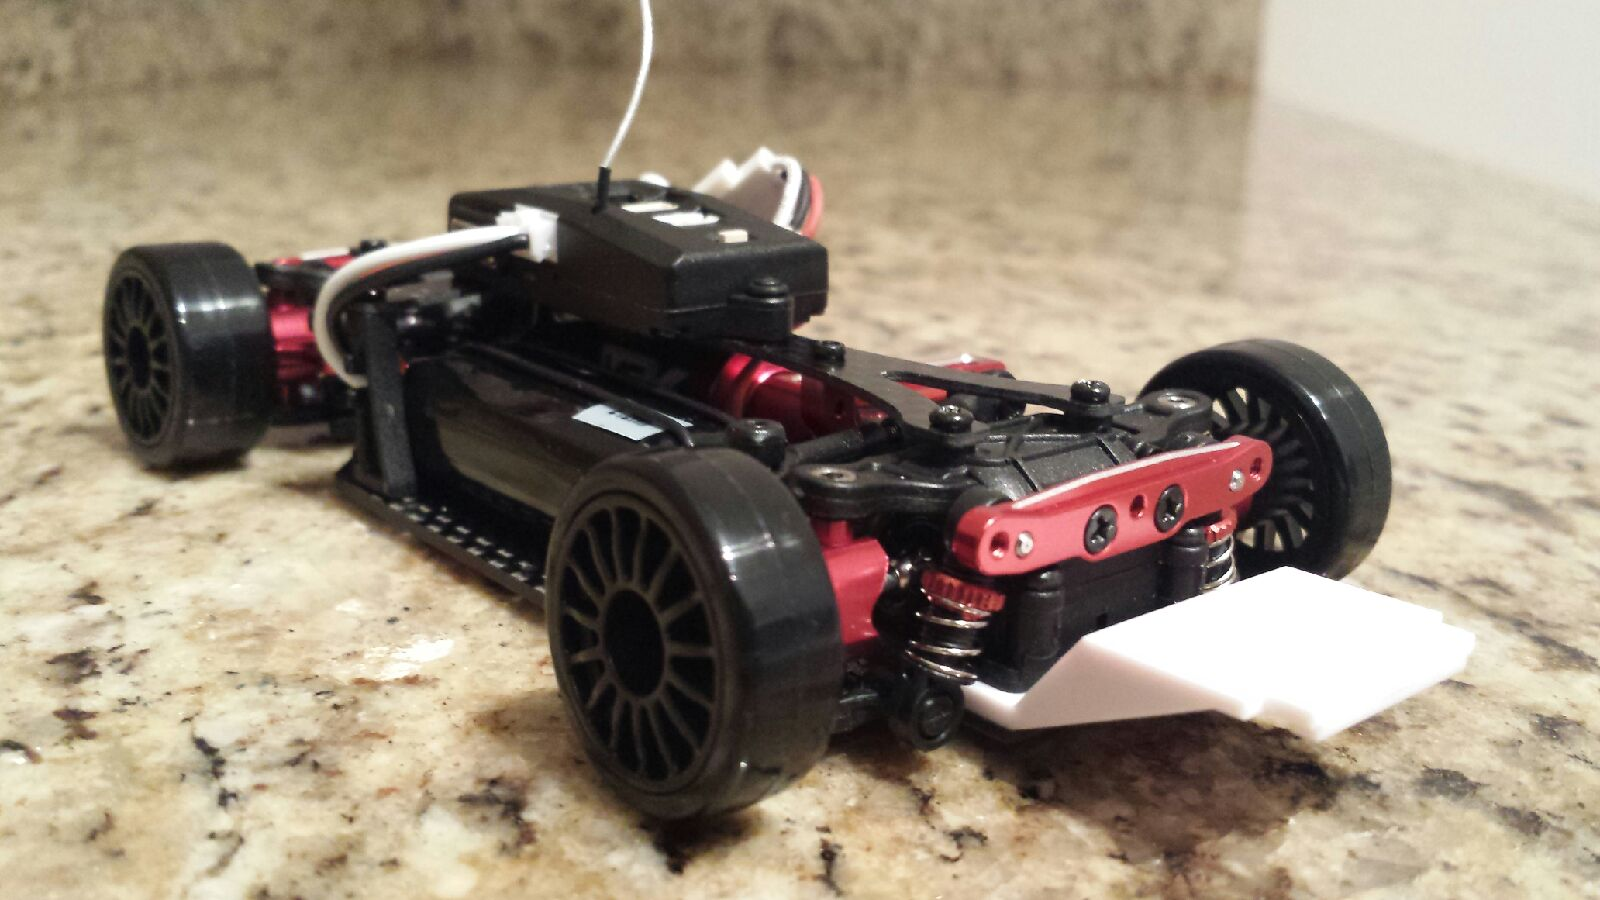 Atomic Rc Amz Miniz Brushless 4wd Competitor Page 3 R